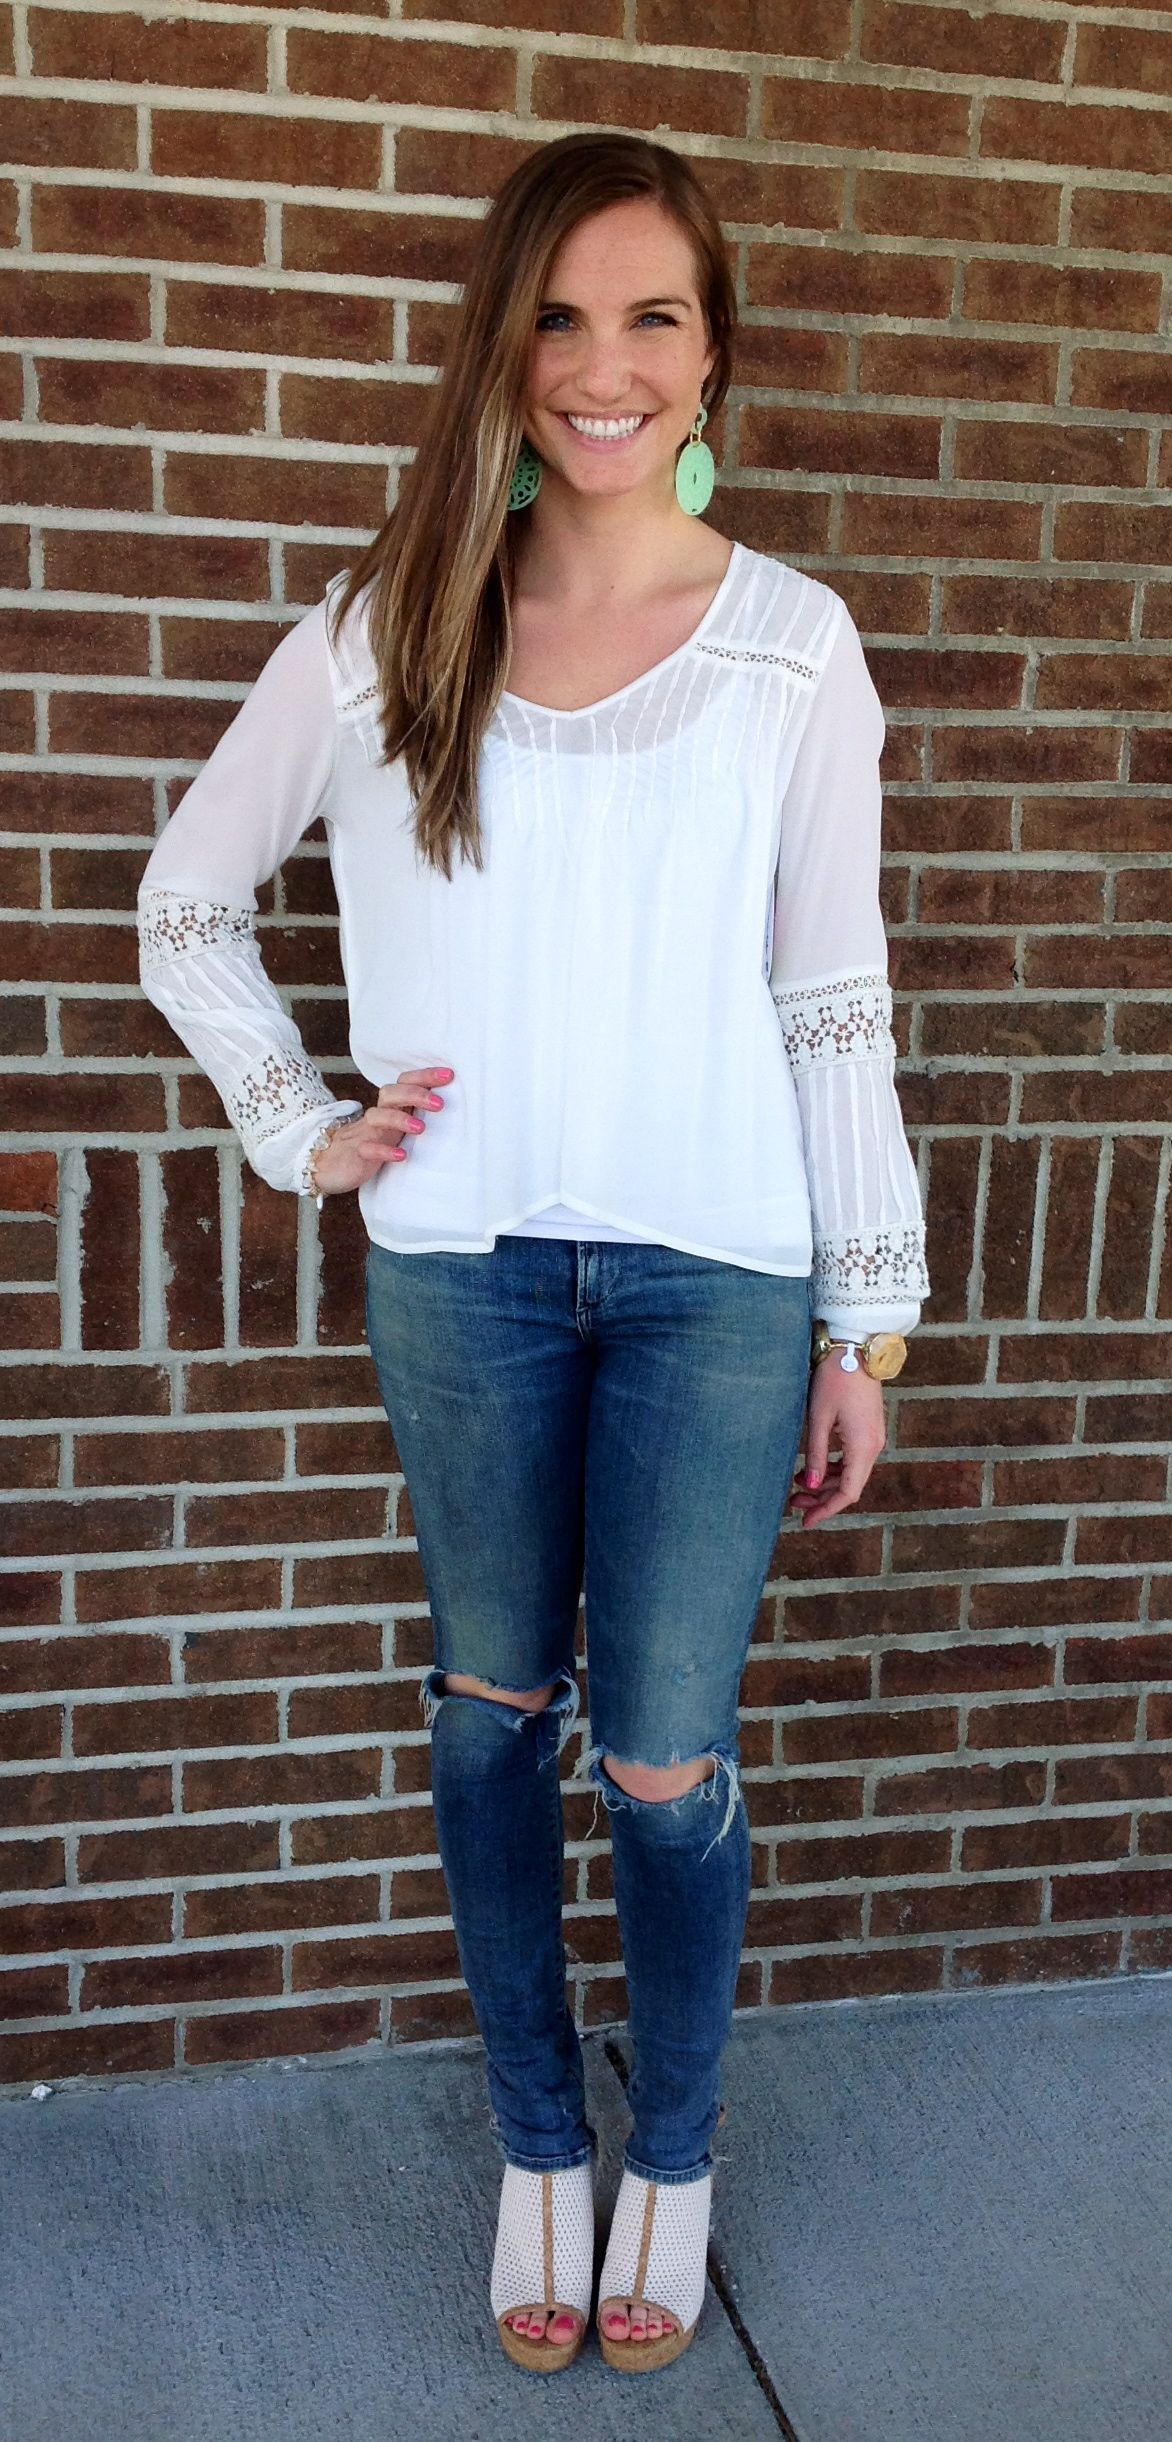 Chloe Oliver top, Citizens of Humanity jeans, Dolce Vita wedges, Moon and Lola earrings